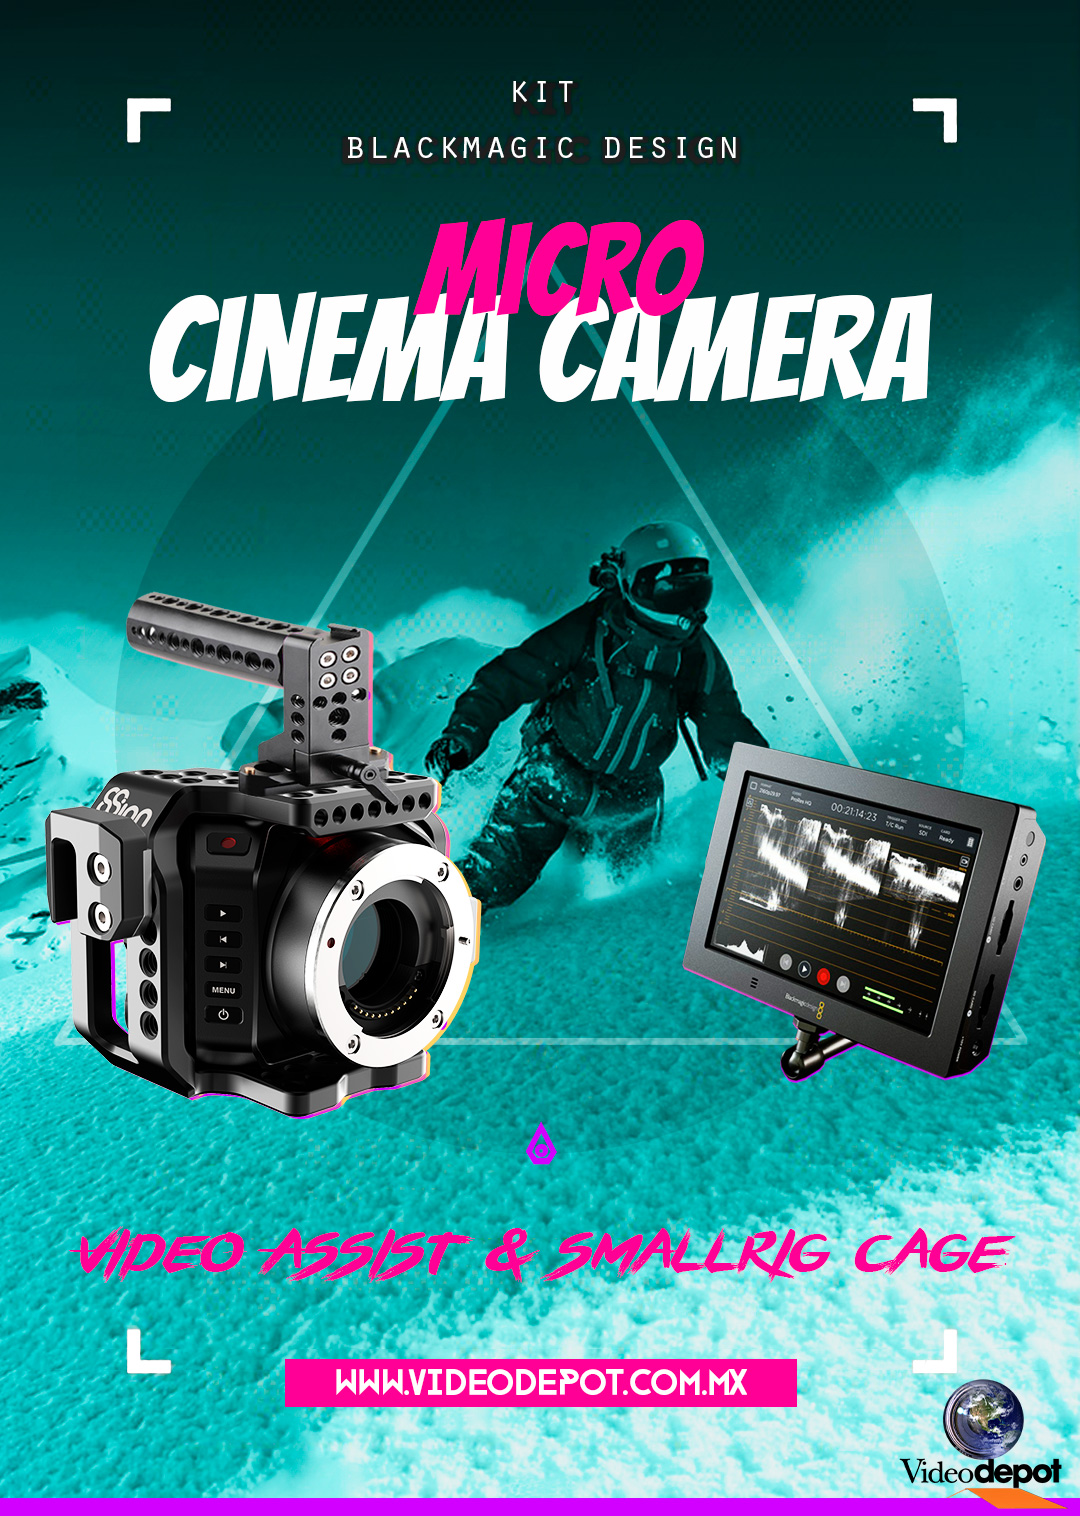 kit-blackmagic-micro-cinema-camera